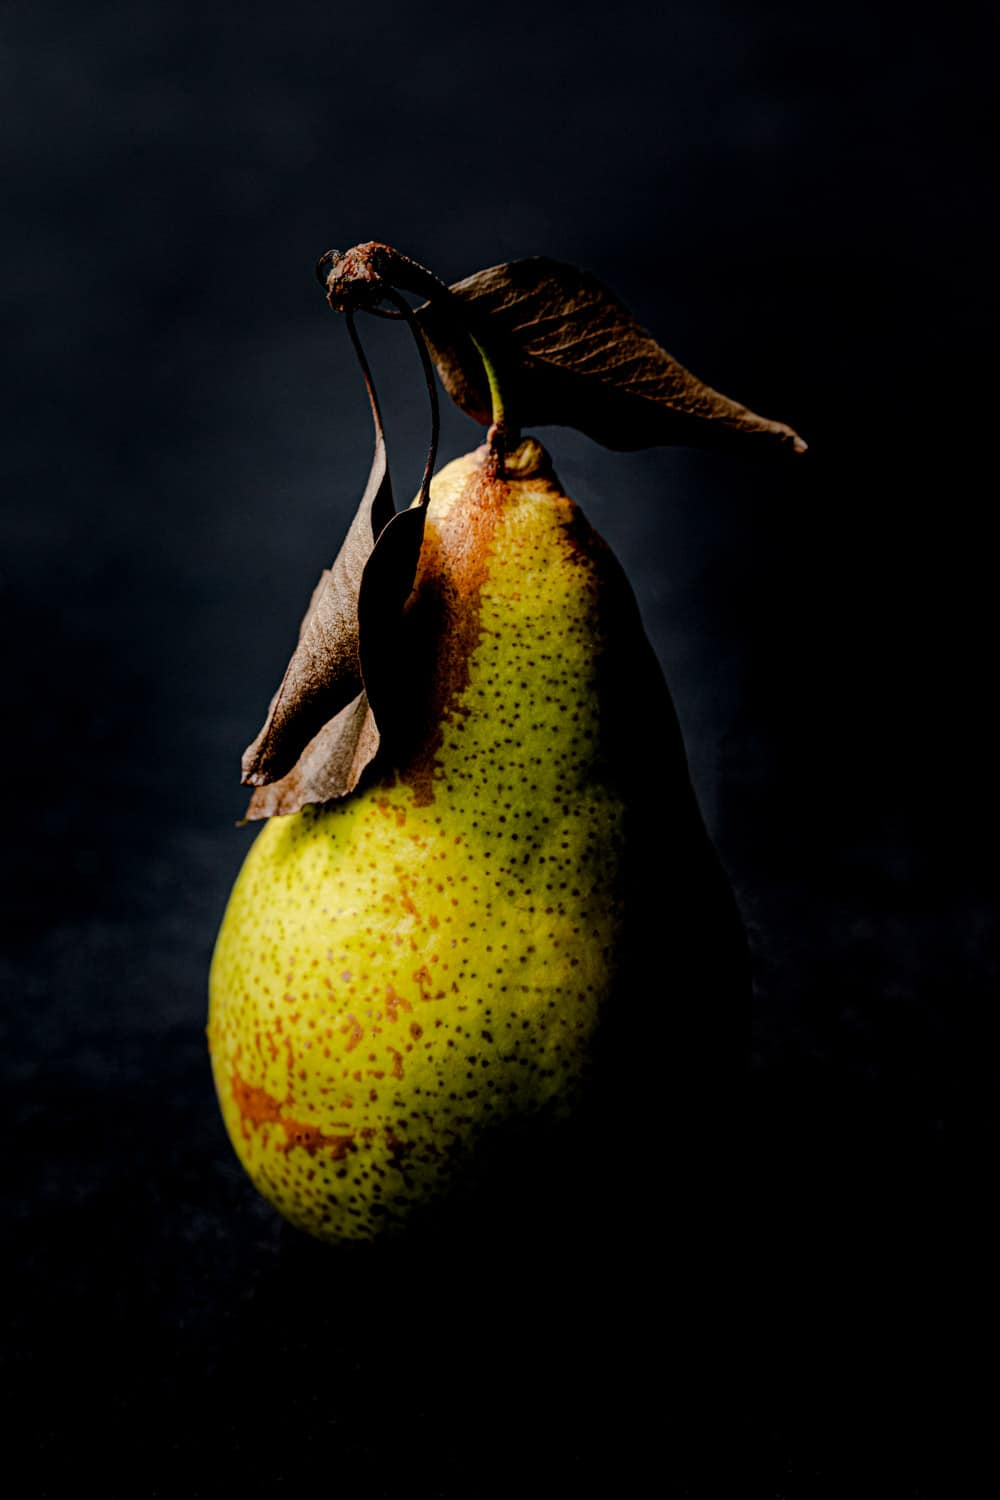 One side of a pear that's green, with the leaves still on it, straight on and up close shot, on a black background.